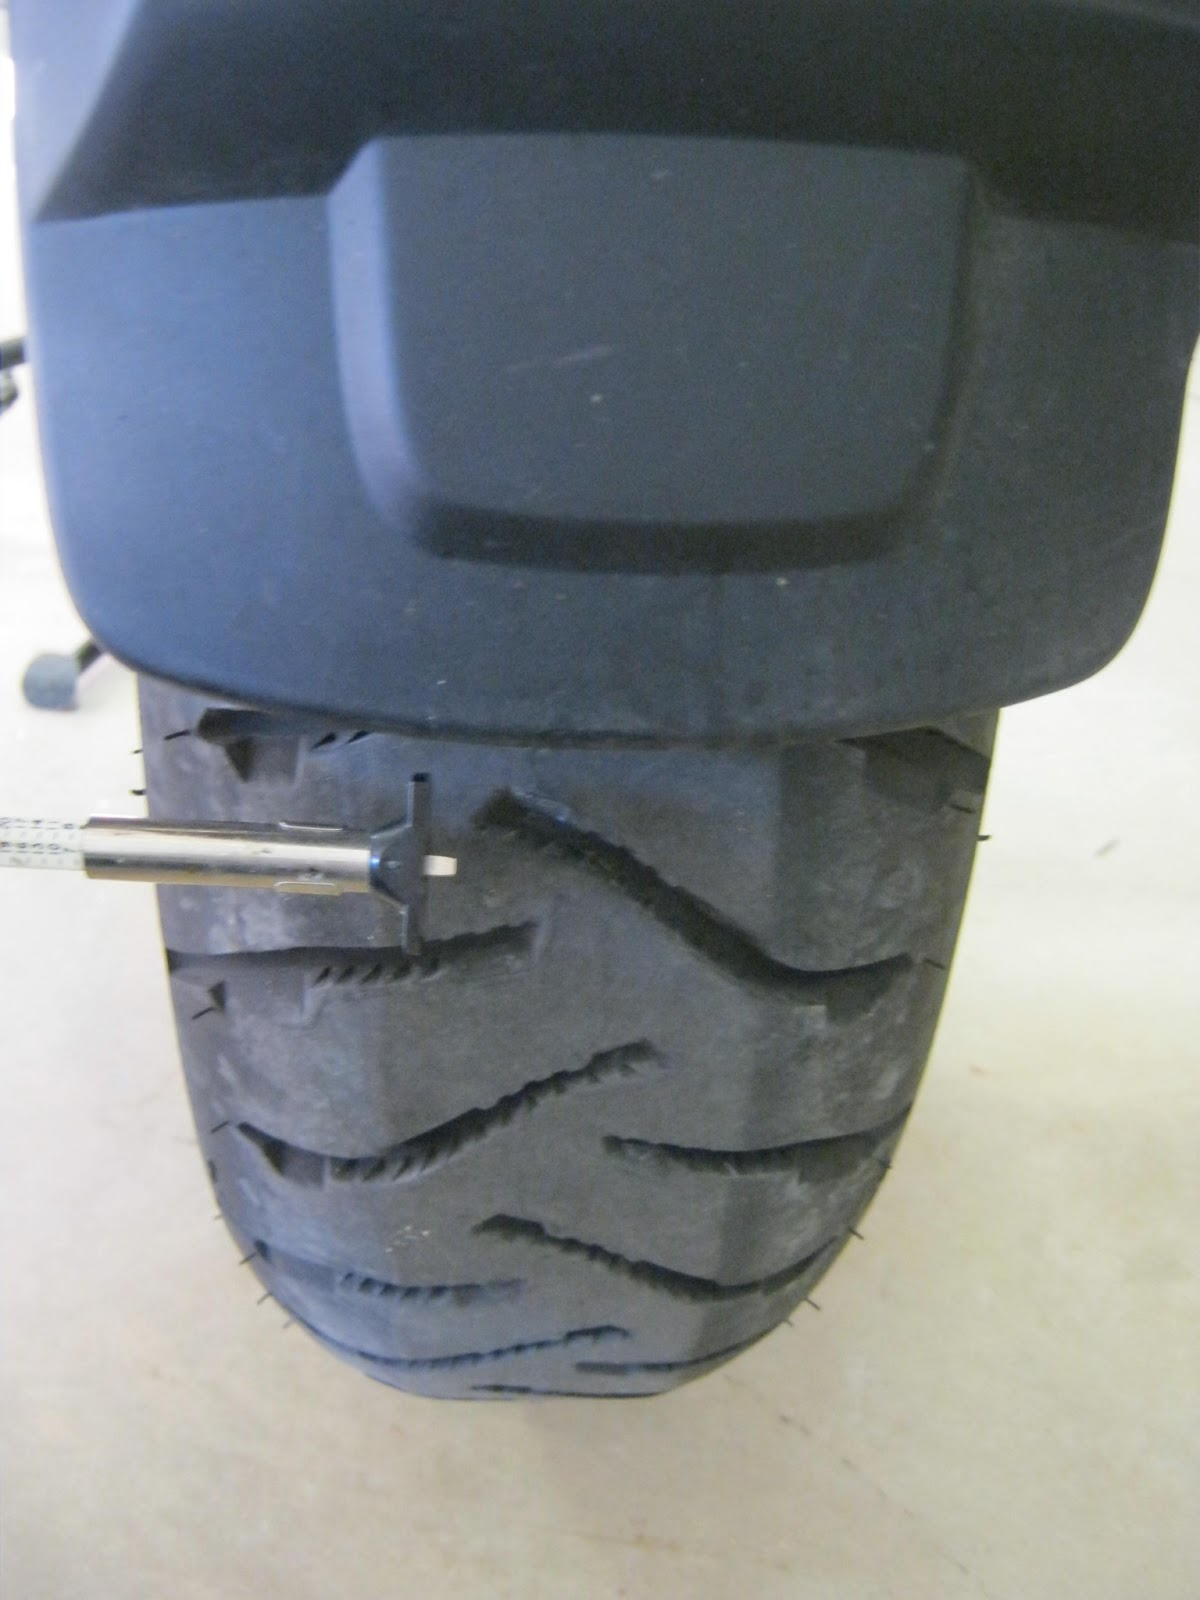 I Measured 6 32 45mm At The Center Of Tread On Front Tire There Is Hardly Any Noticeable Wear